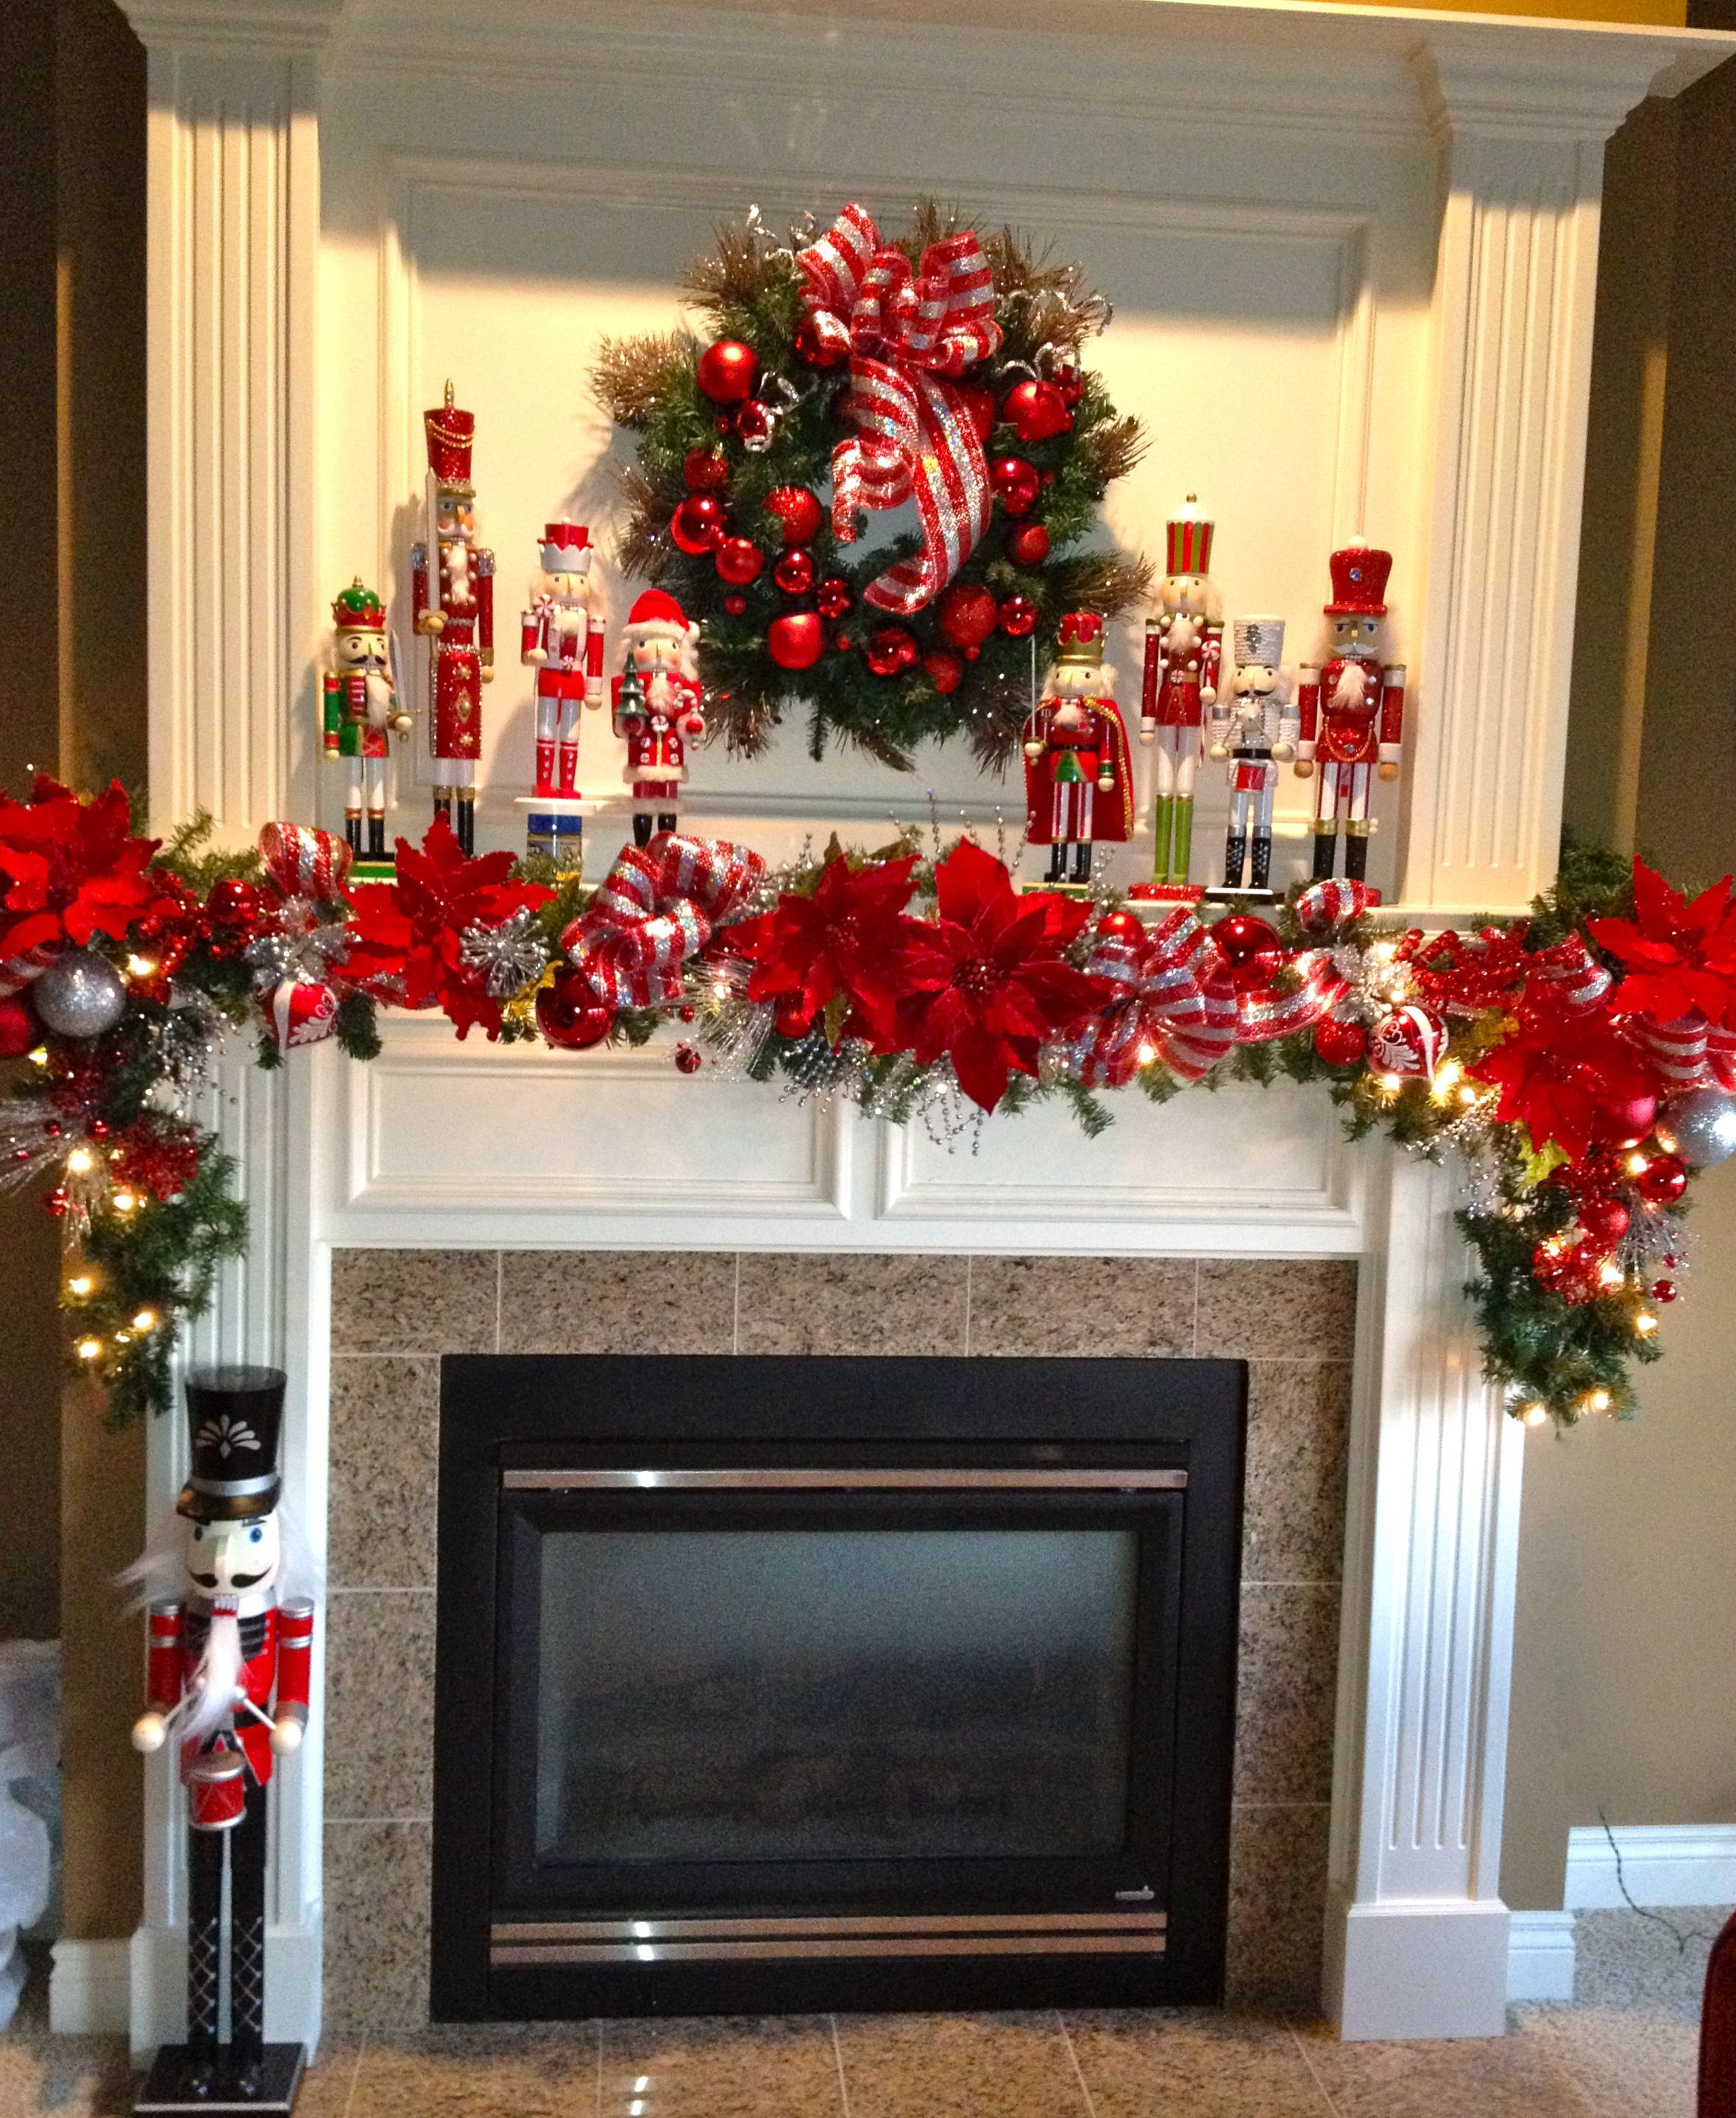 related image - How To Decorate A White Fireplace Mantel For Christmas